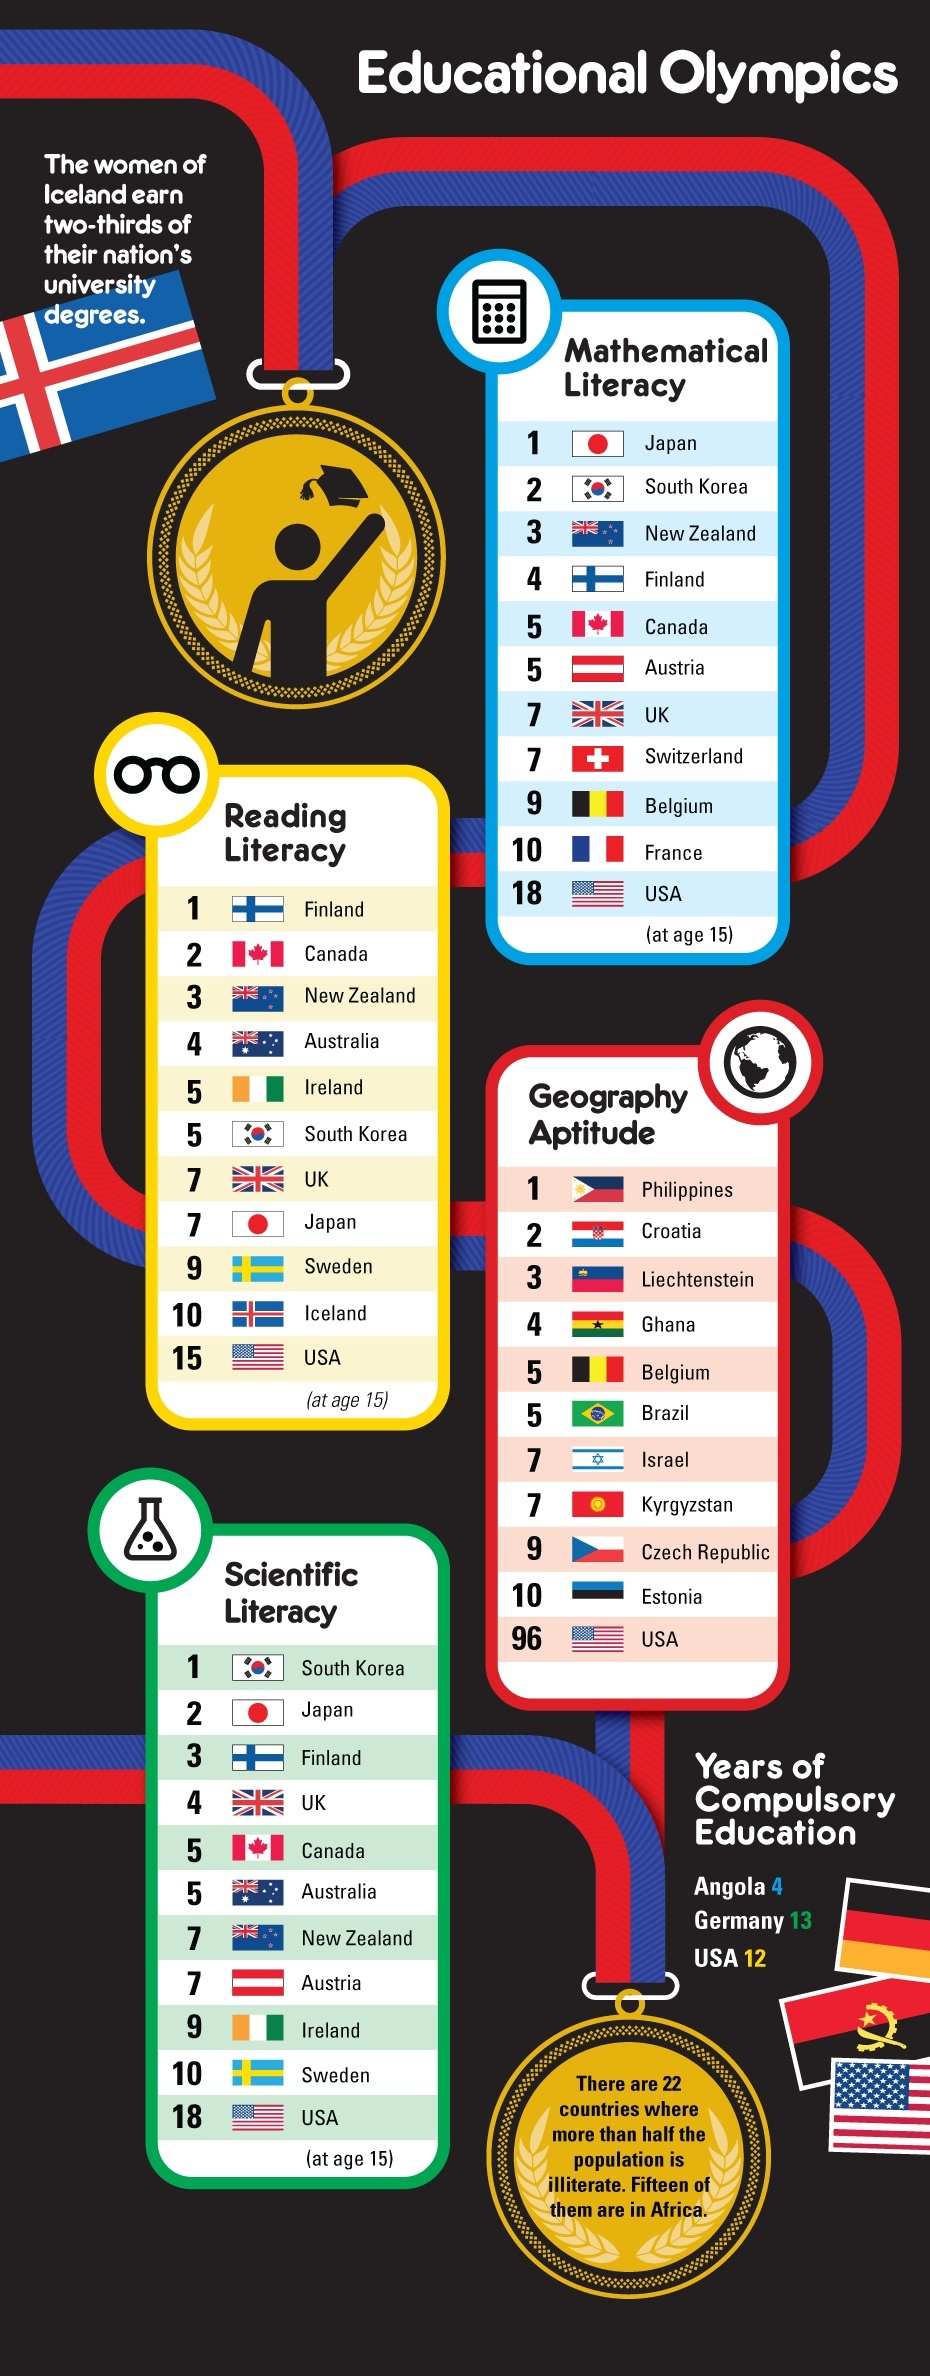 educational olympics literacy by nation